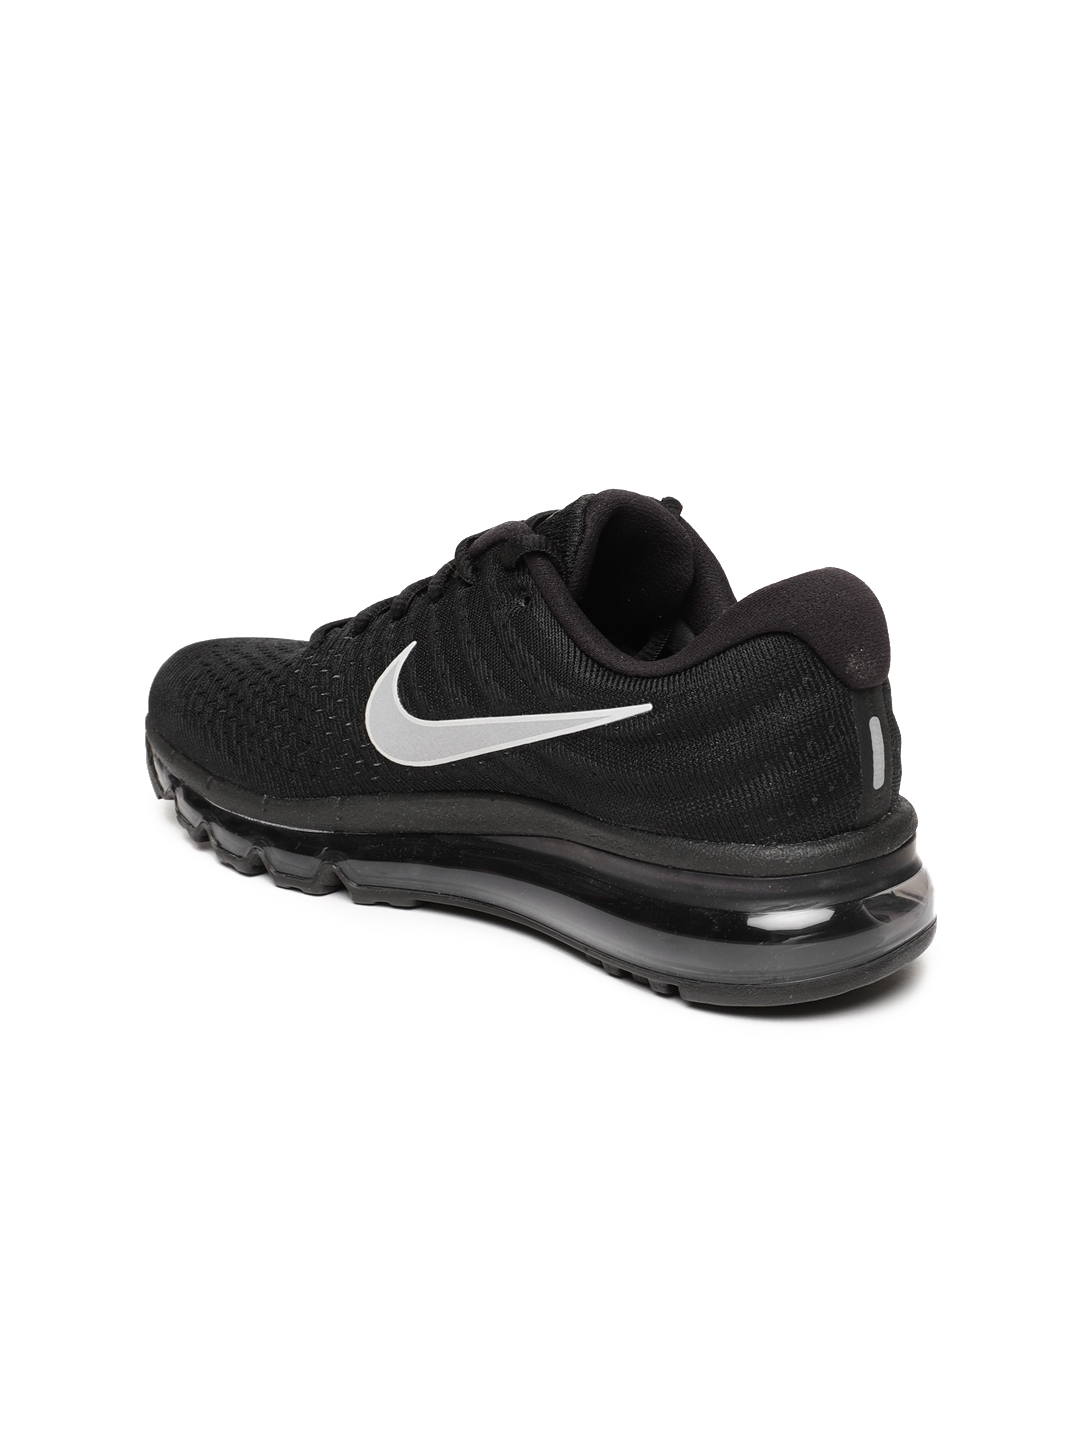 low priced f47e7 fdf0a Nike Women Black Air Max 2017 Running Shoes